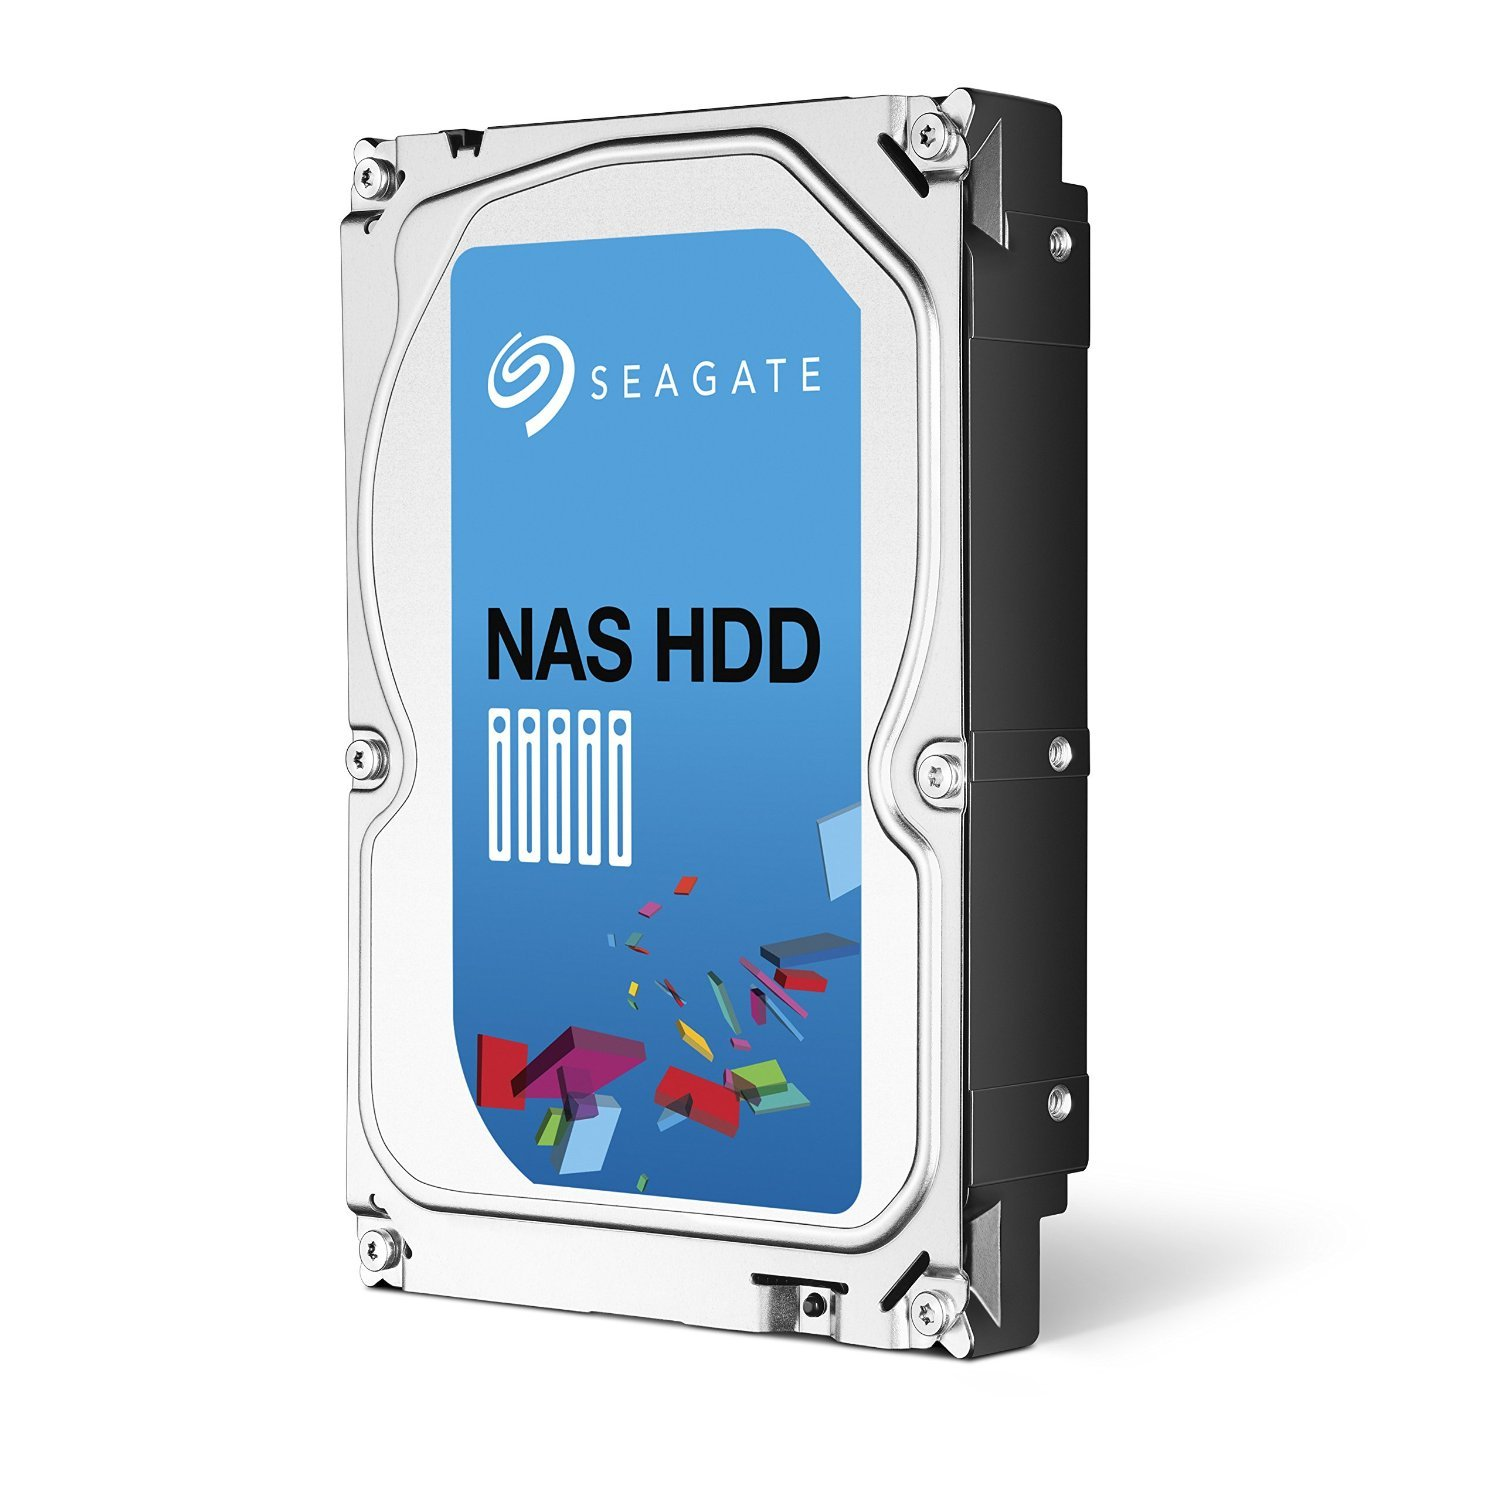 (Old Model) Seagate 4TB NAS HDD SATA 64MB Cache 3.5-Inch Internal Bare Drive (ST4000VN000) by Seagate (Image #1)